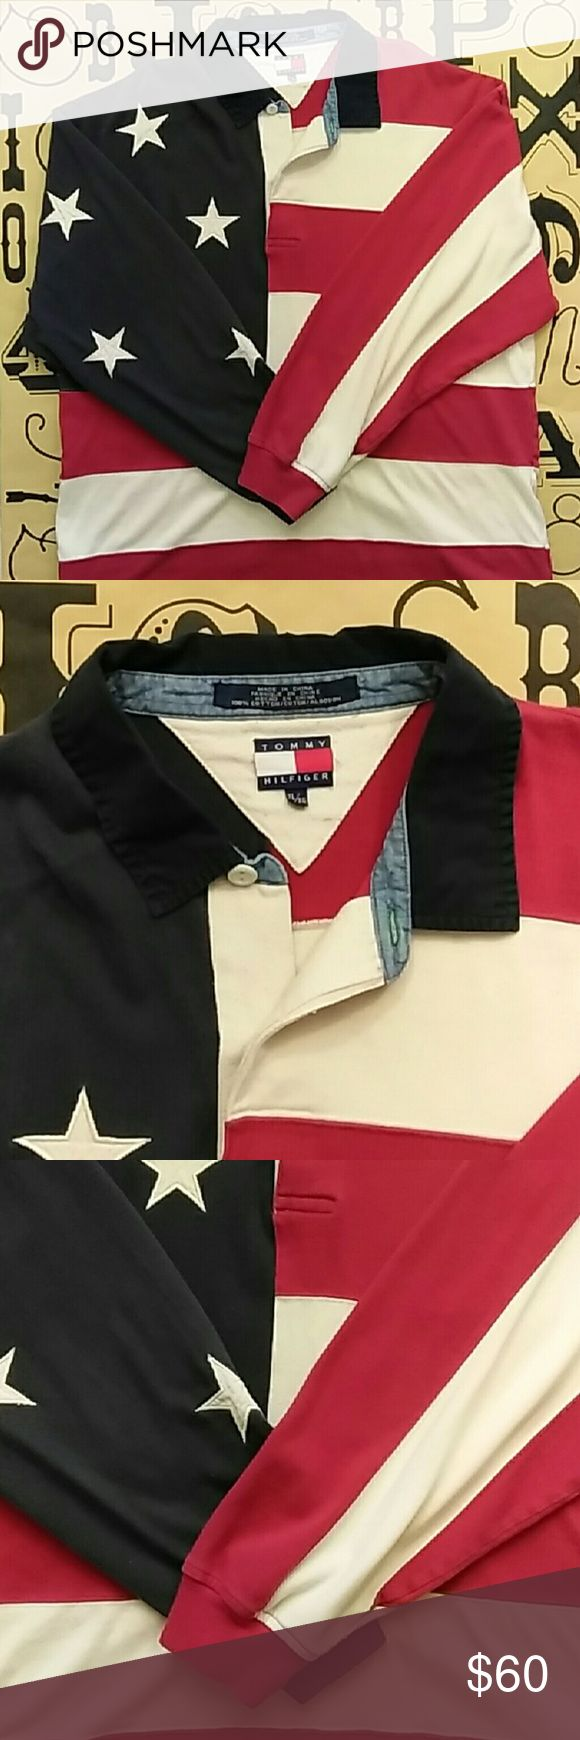 Tommy Hilfiger American flag rugby long sleeve Gently used early 2000s Tommy Hilfiger American flag rugby long sleeve shirt size XL Tommy Hilfiger Shirts